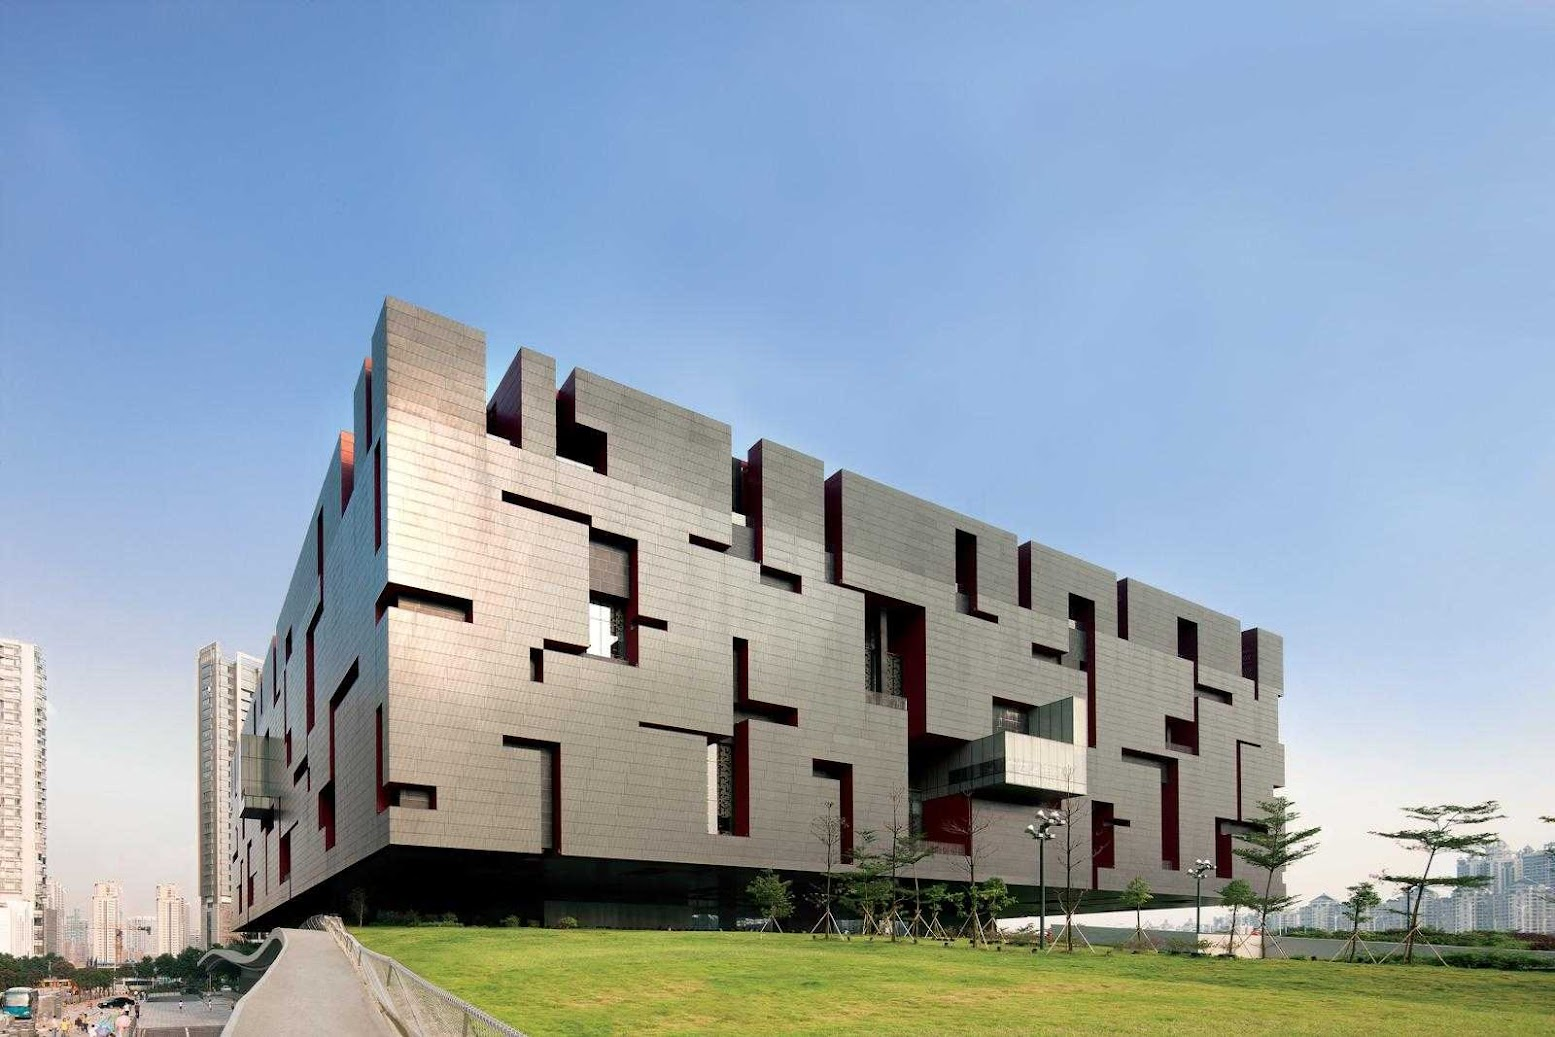 Guangzhou, Quantung, Cina: [GUANGDONG MUSEUM BY ROCCO DESIGN ARCHITECTS]